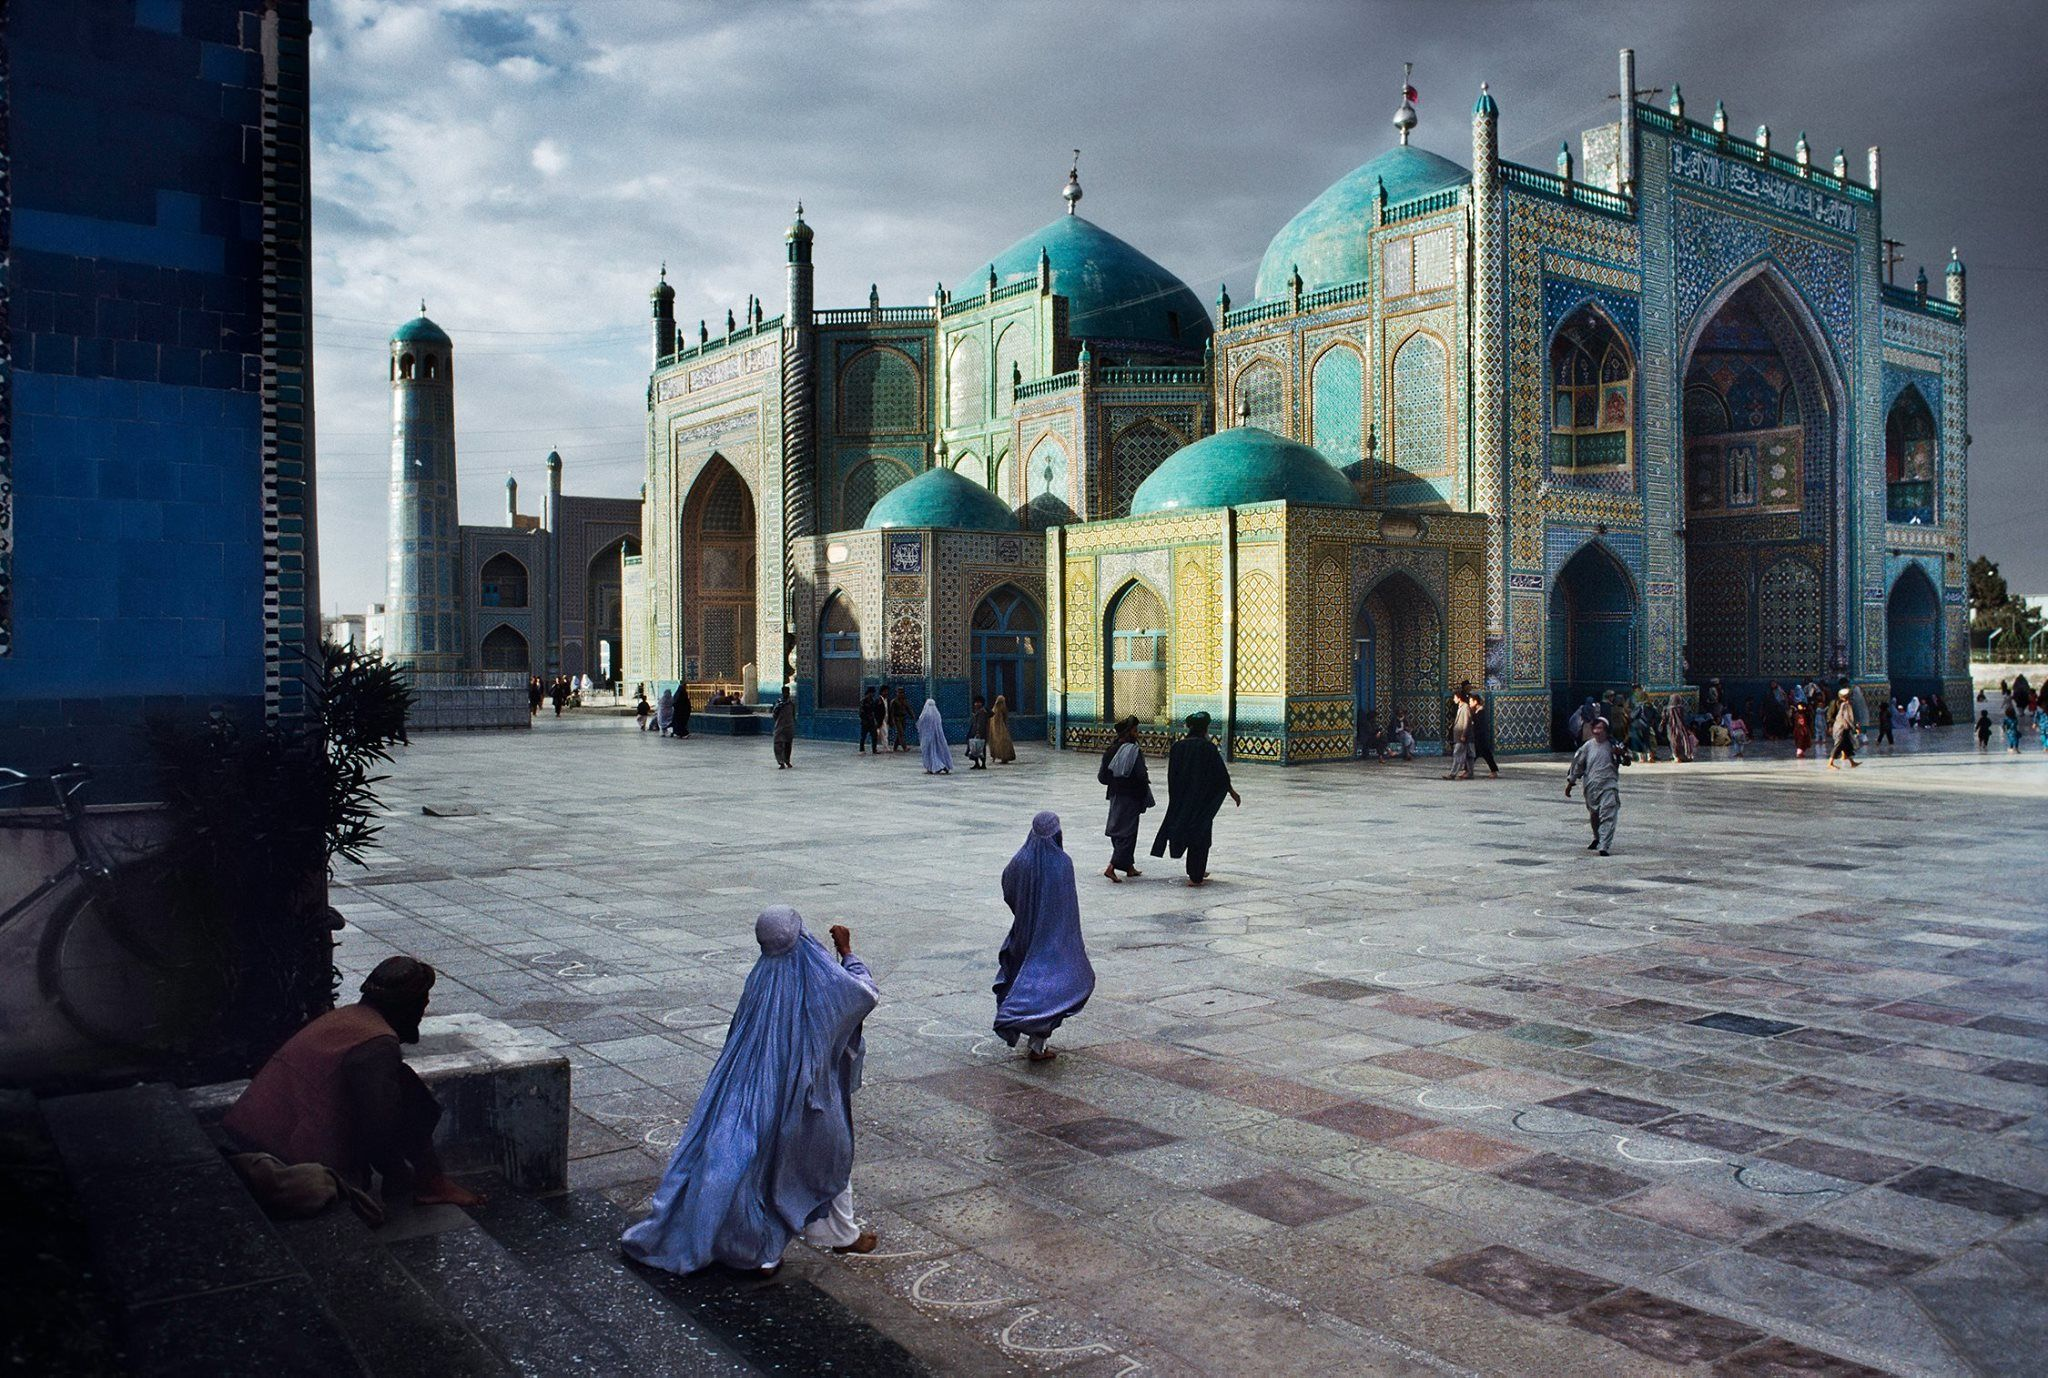 Sluts in Mazar-e Sharif